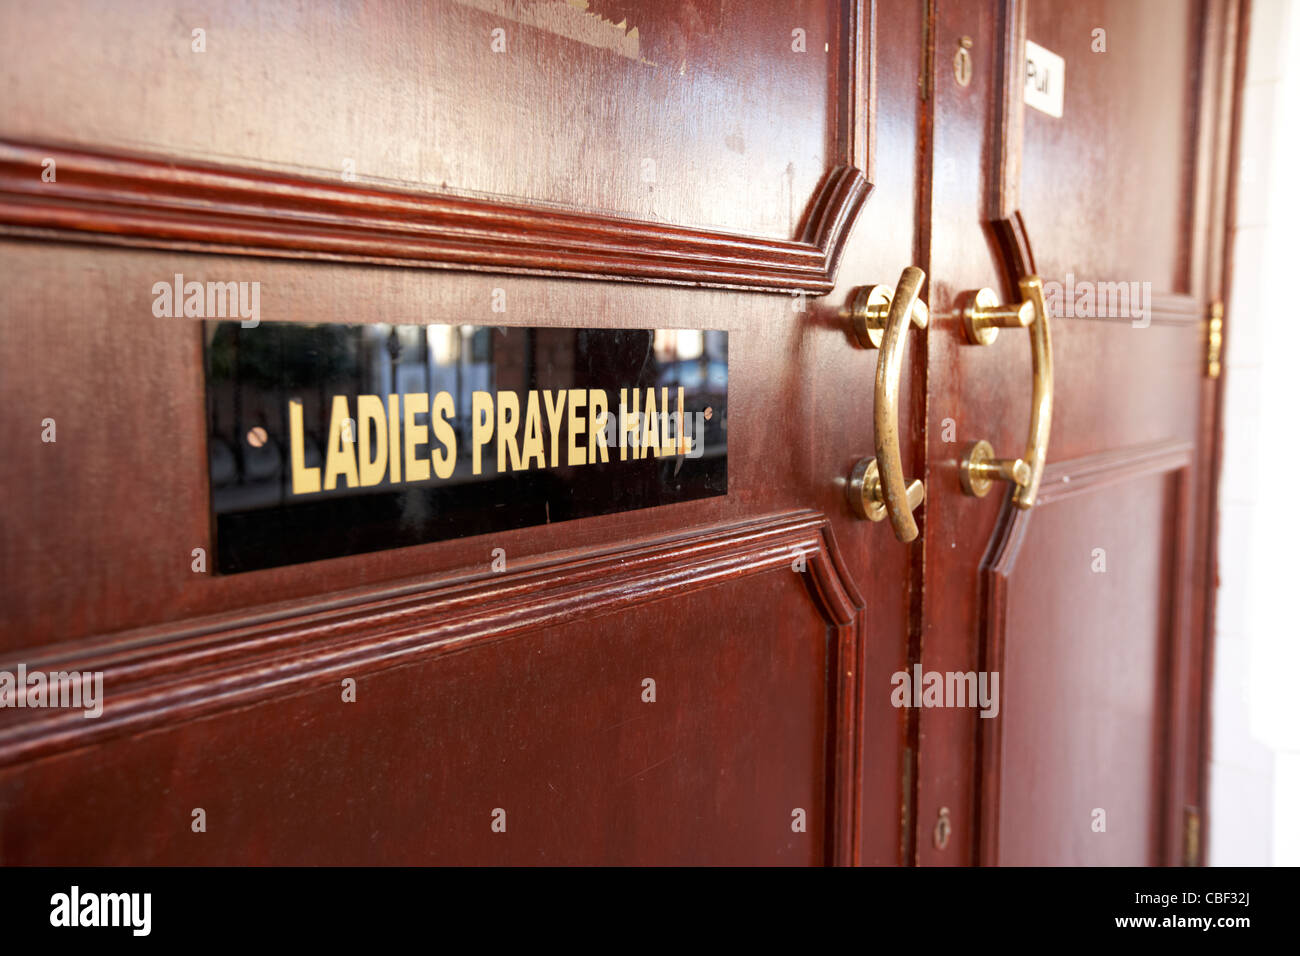 ladies prayer hall entrance at a mosque in north london england uk united kingdom - Stock Image